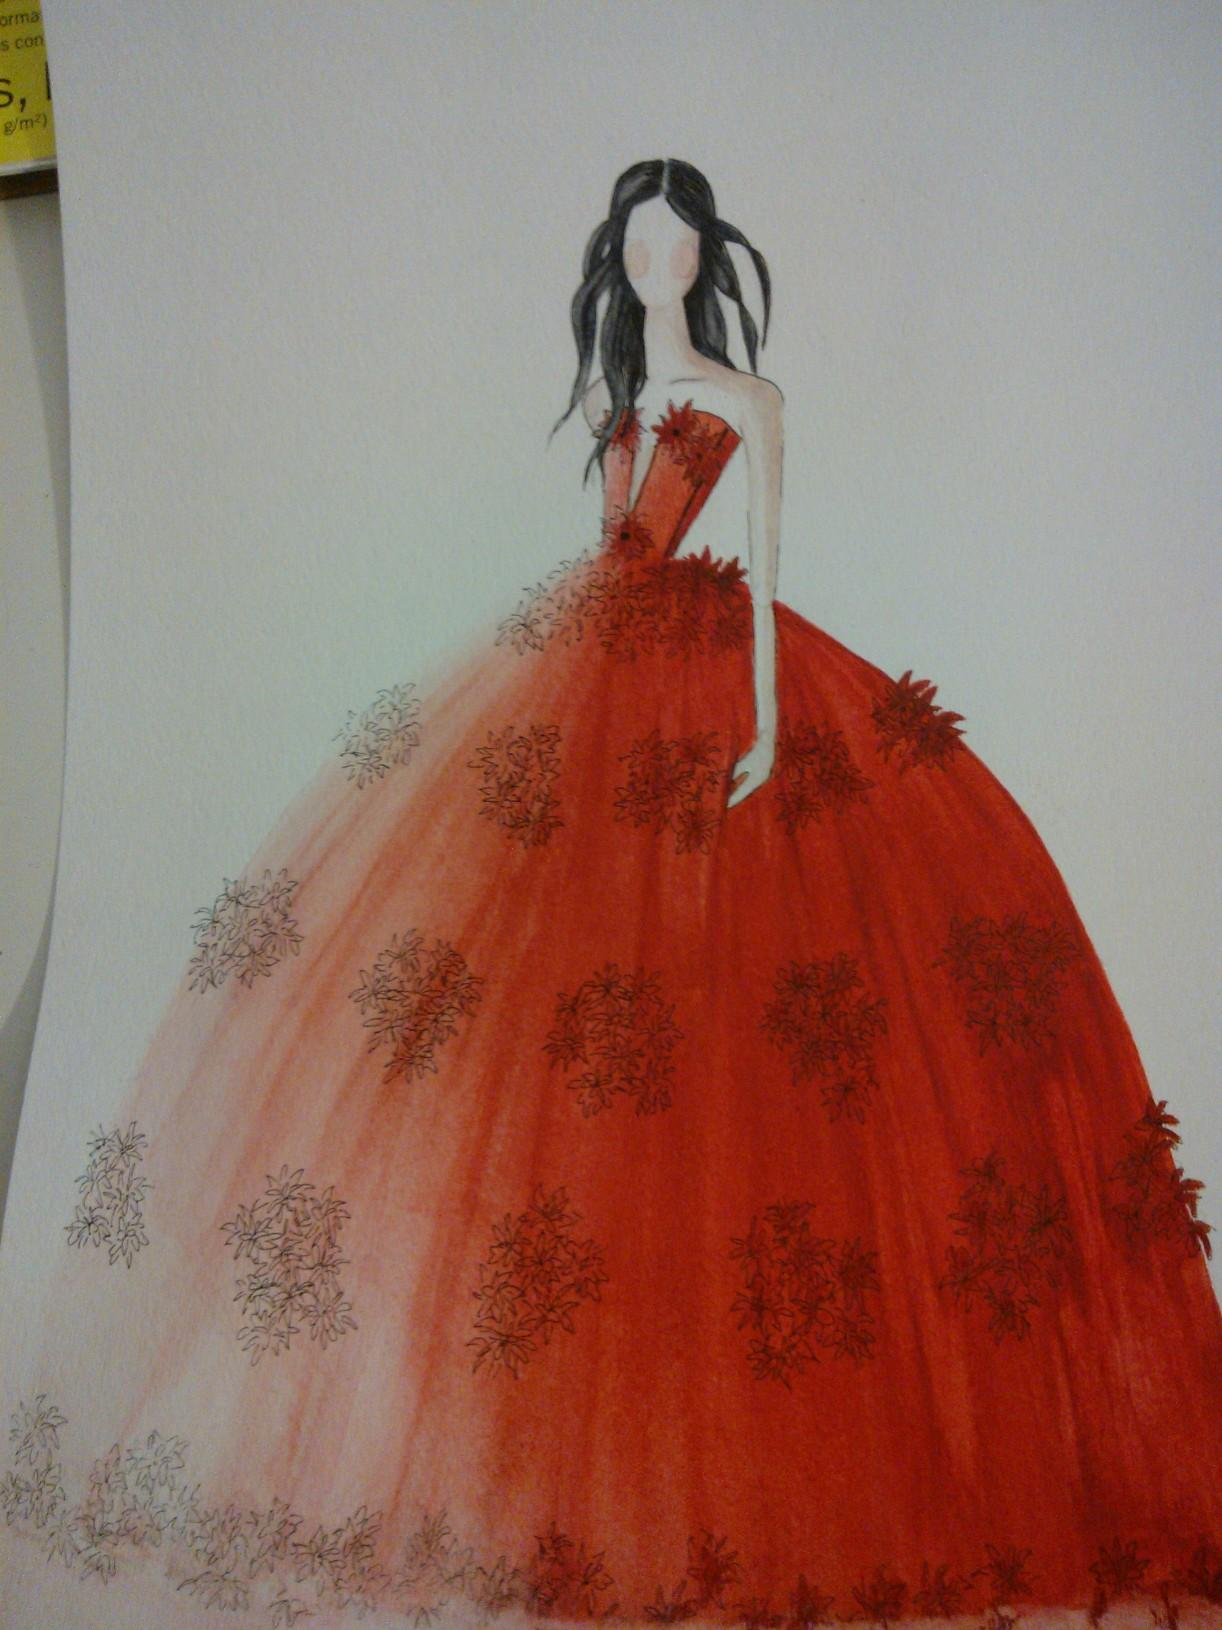 EMBELLISHED-WATERCOLOR-Everybody must have a fantasy..... - image 3 - student project